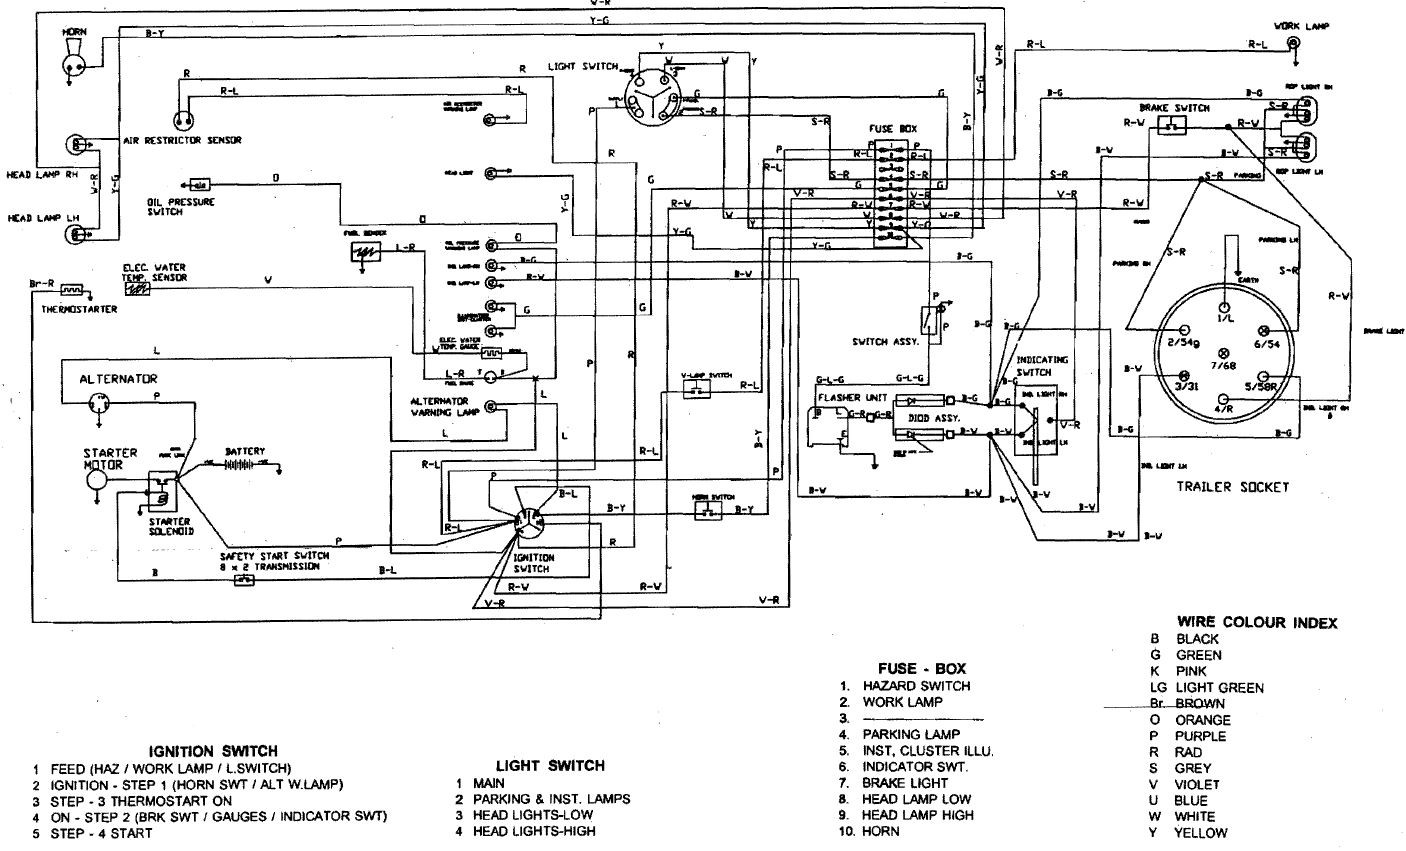 wiring diagram for tractor ignition switch 2003 chrysler sebring fuse box kubota mower free